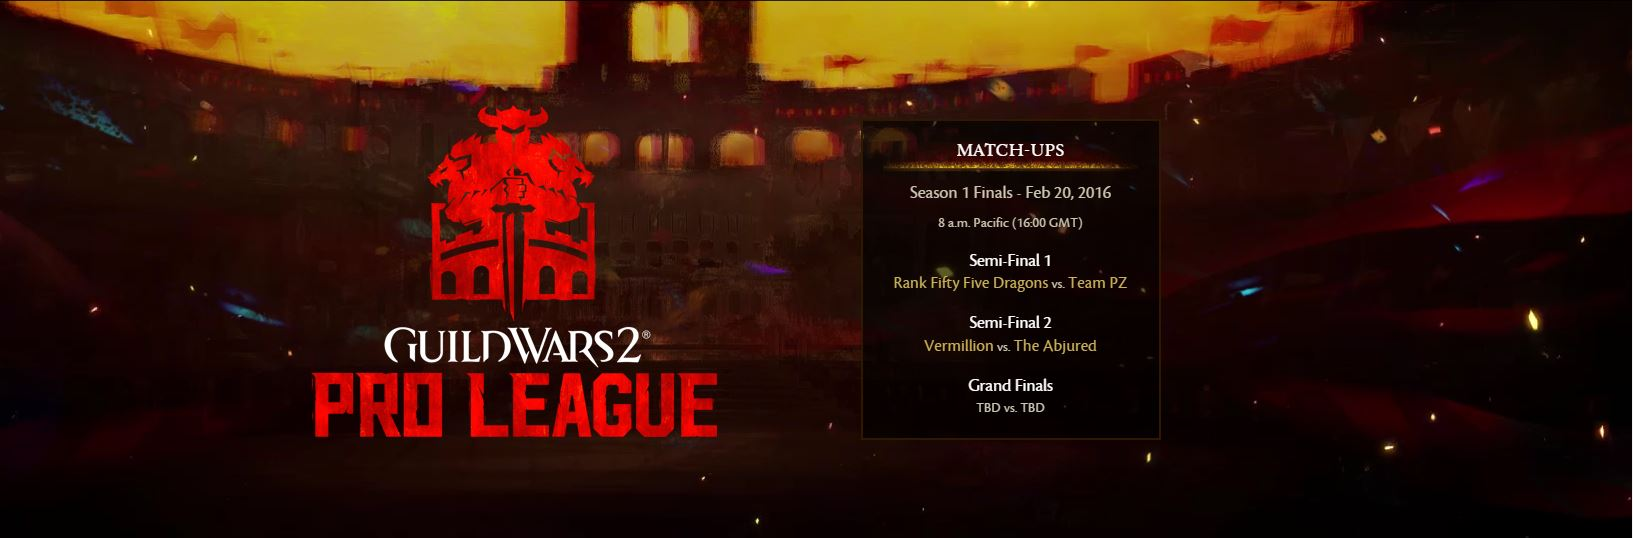 Guild Wars 2 Pro League vasario 20 d.